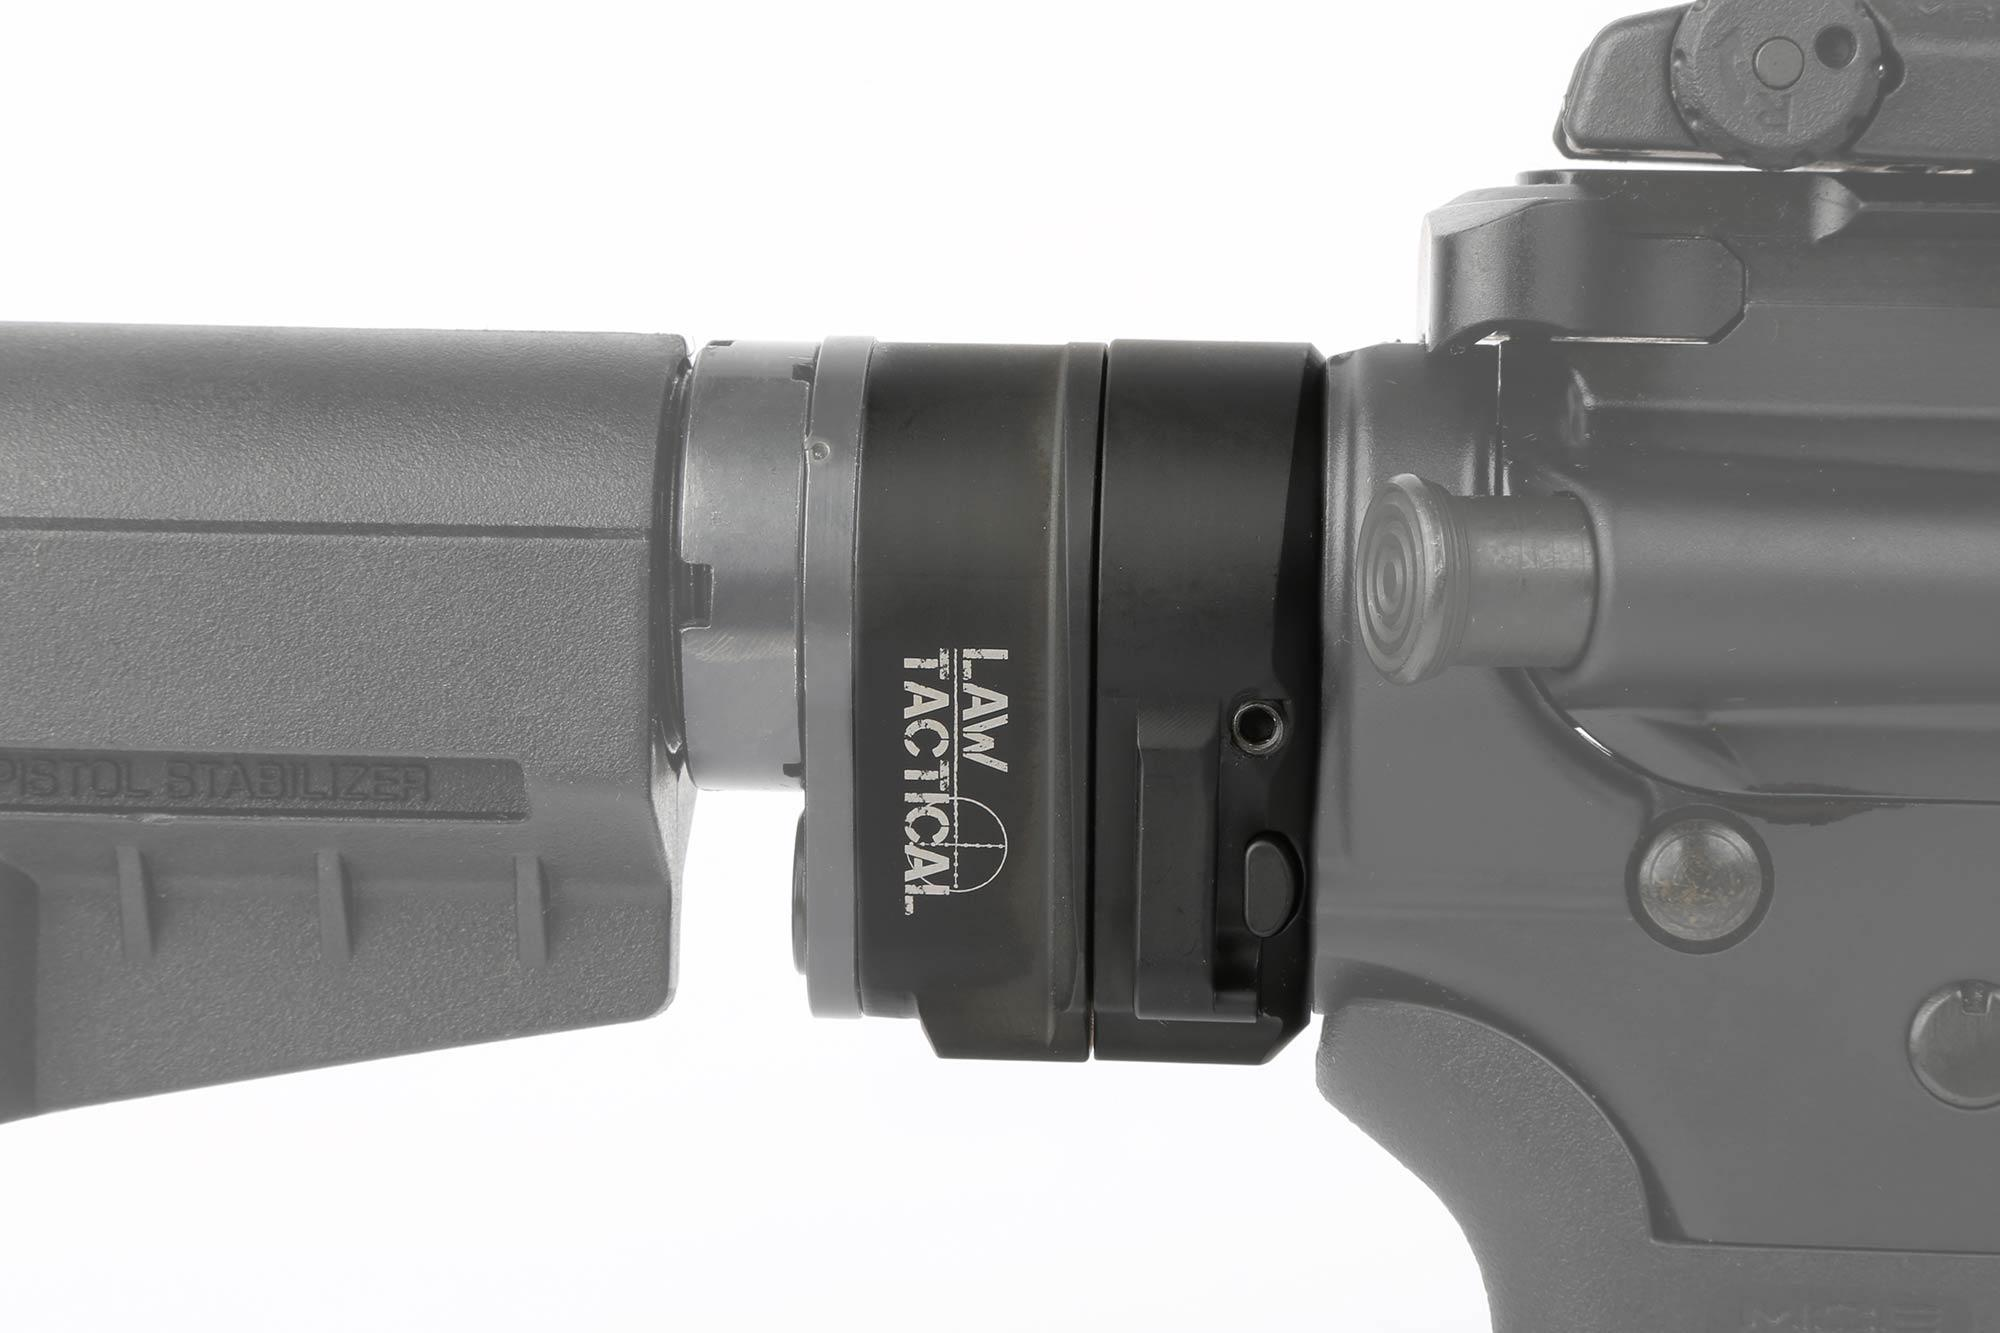 The Law Tactical AR Folding Stock Adapter Gen 3-M for ar-15 and ar308 in the unfolded position with easy to press button